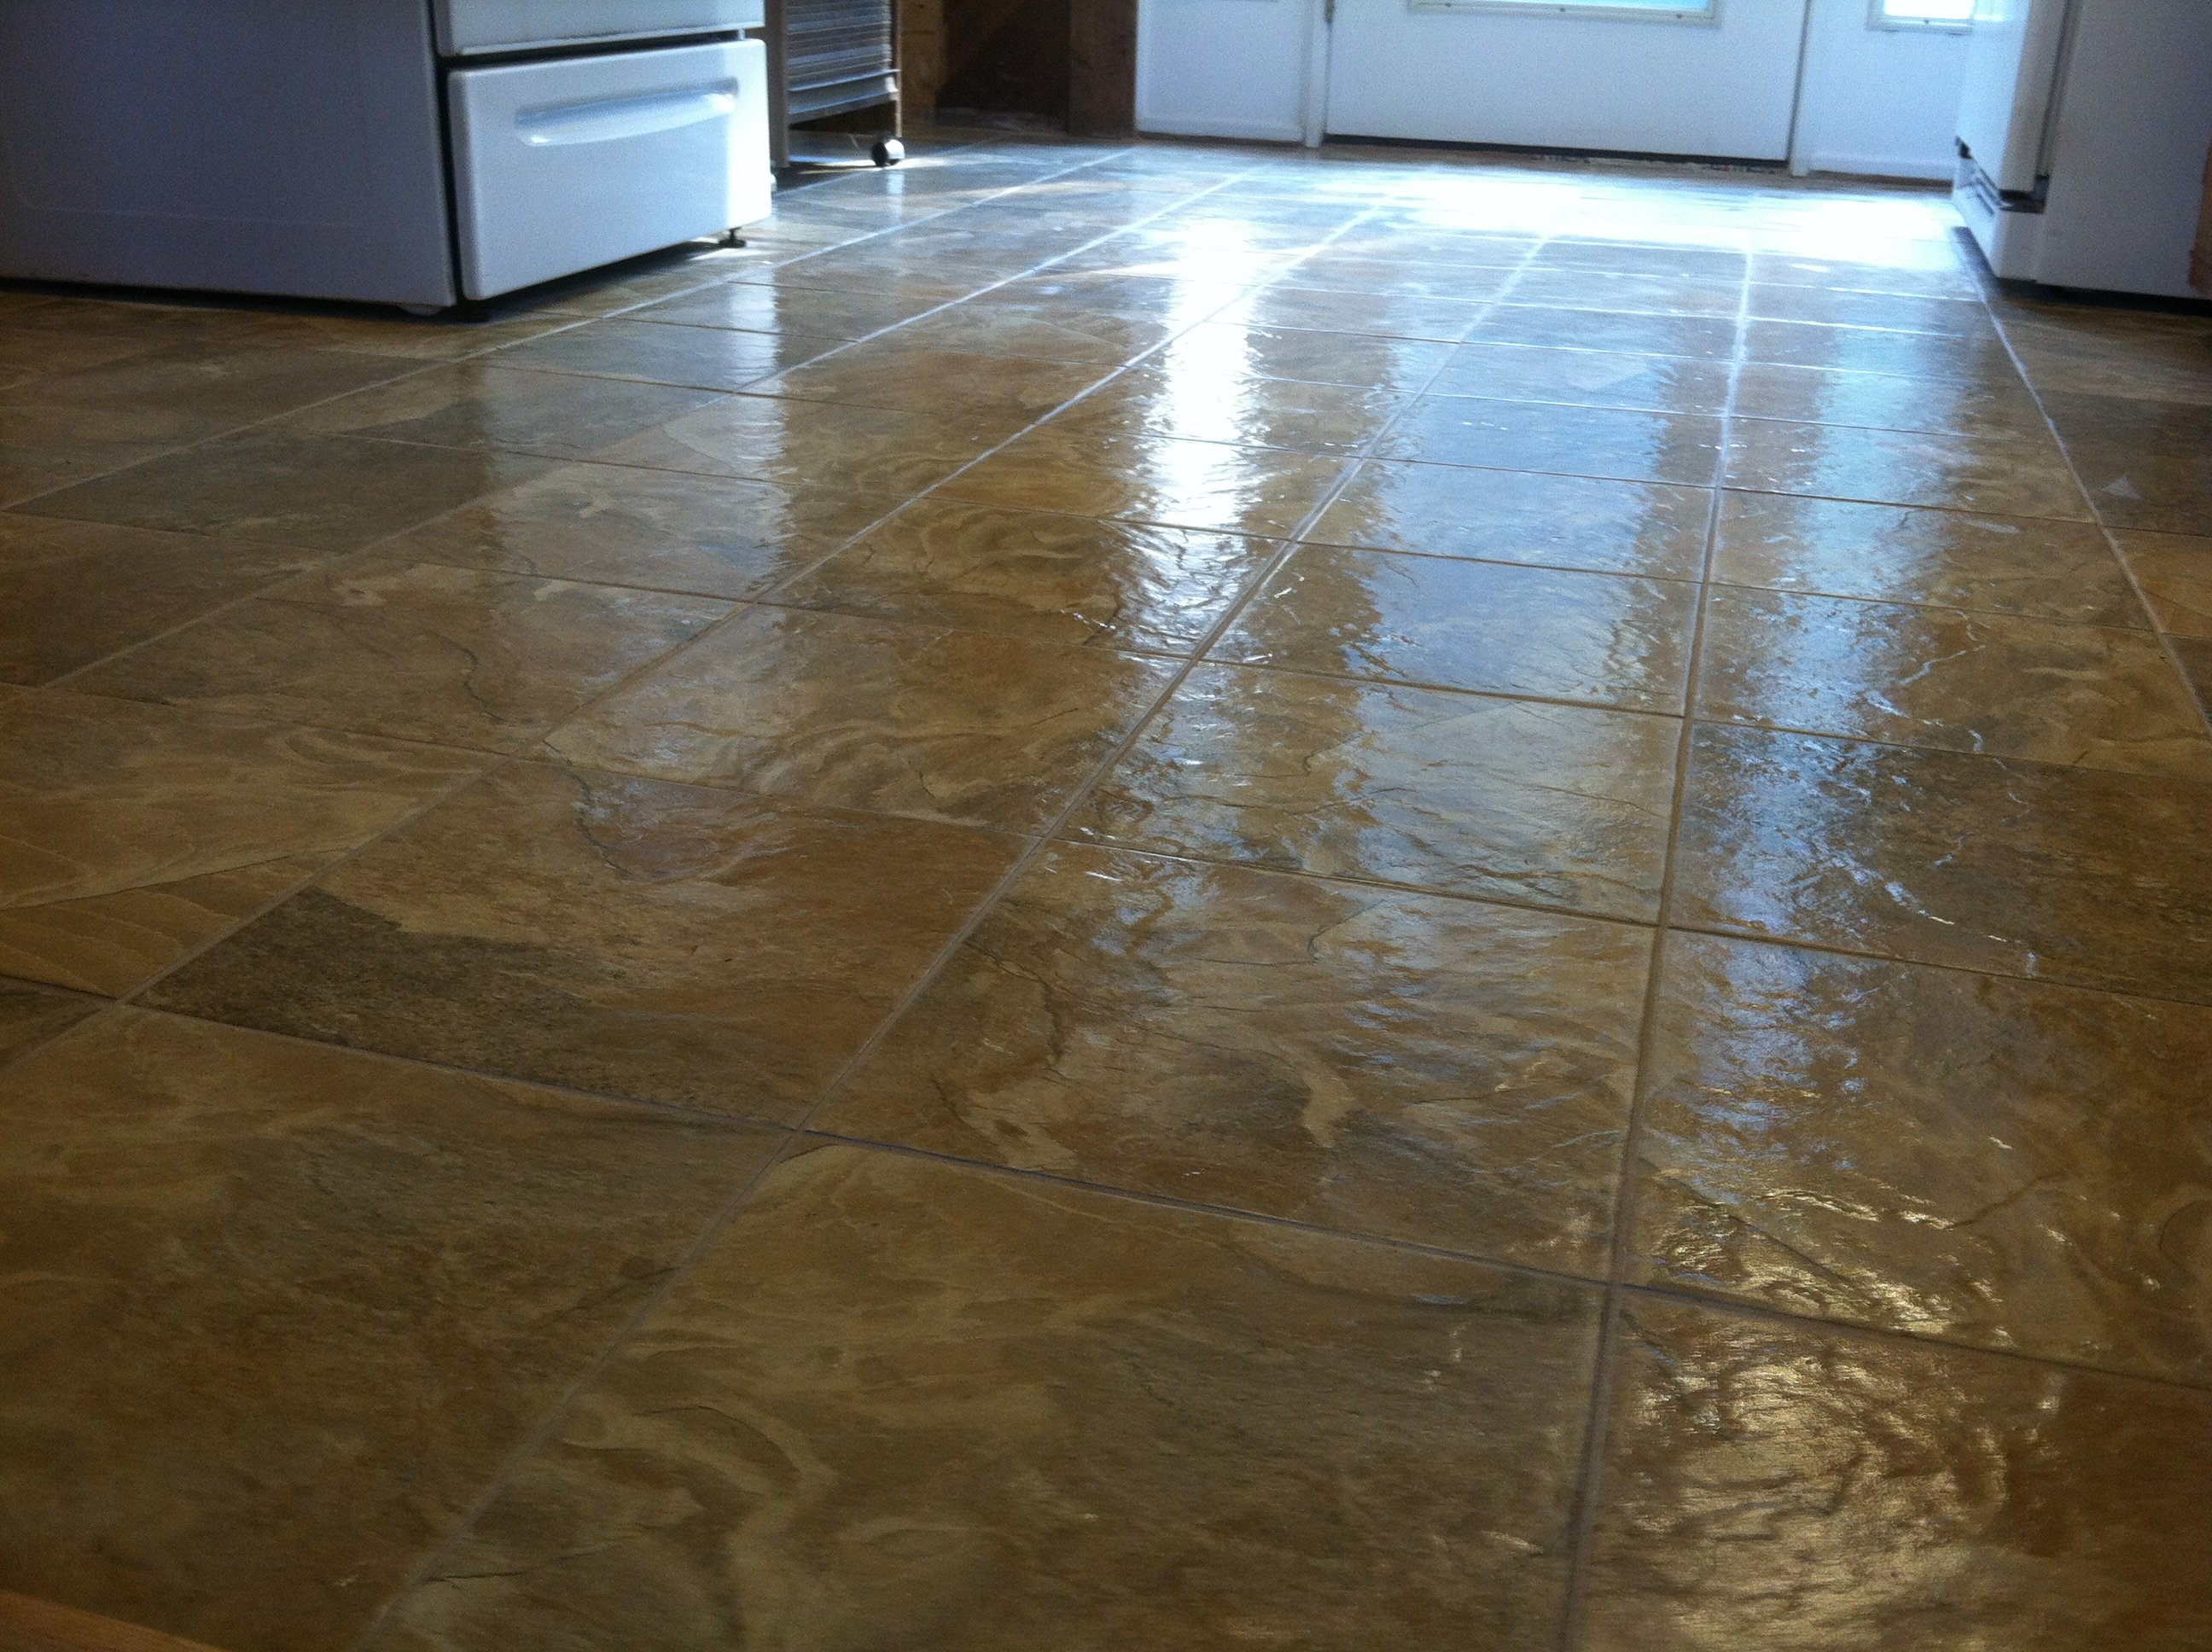 Linoleum  Installing Linoleum Flooring - Is it Worth It? | HomeAdvisor